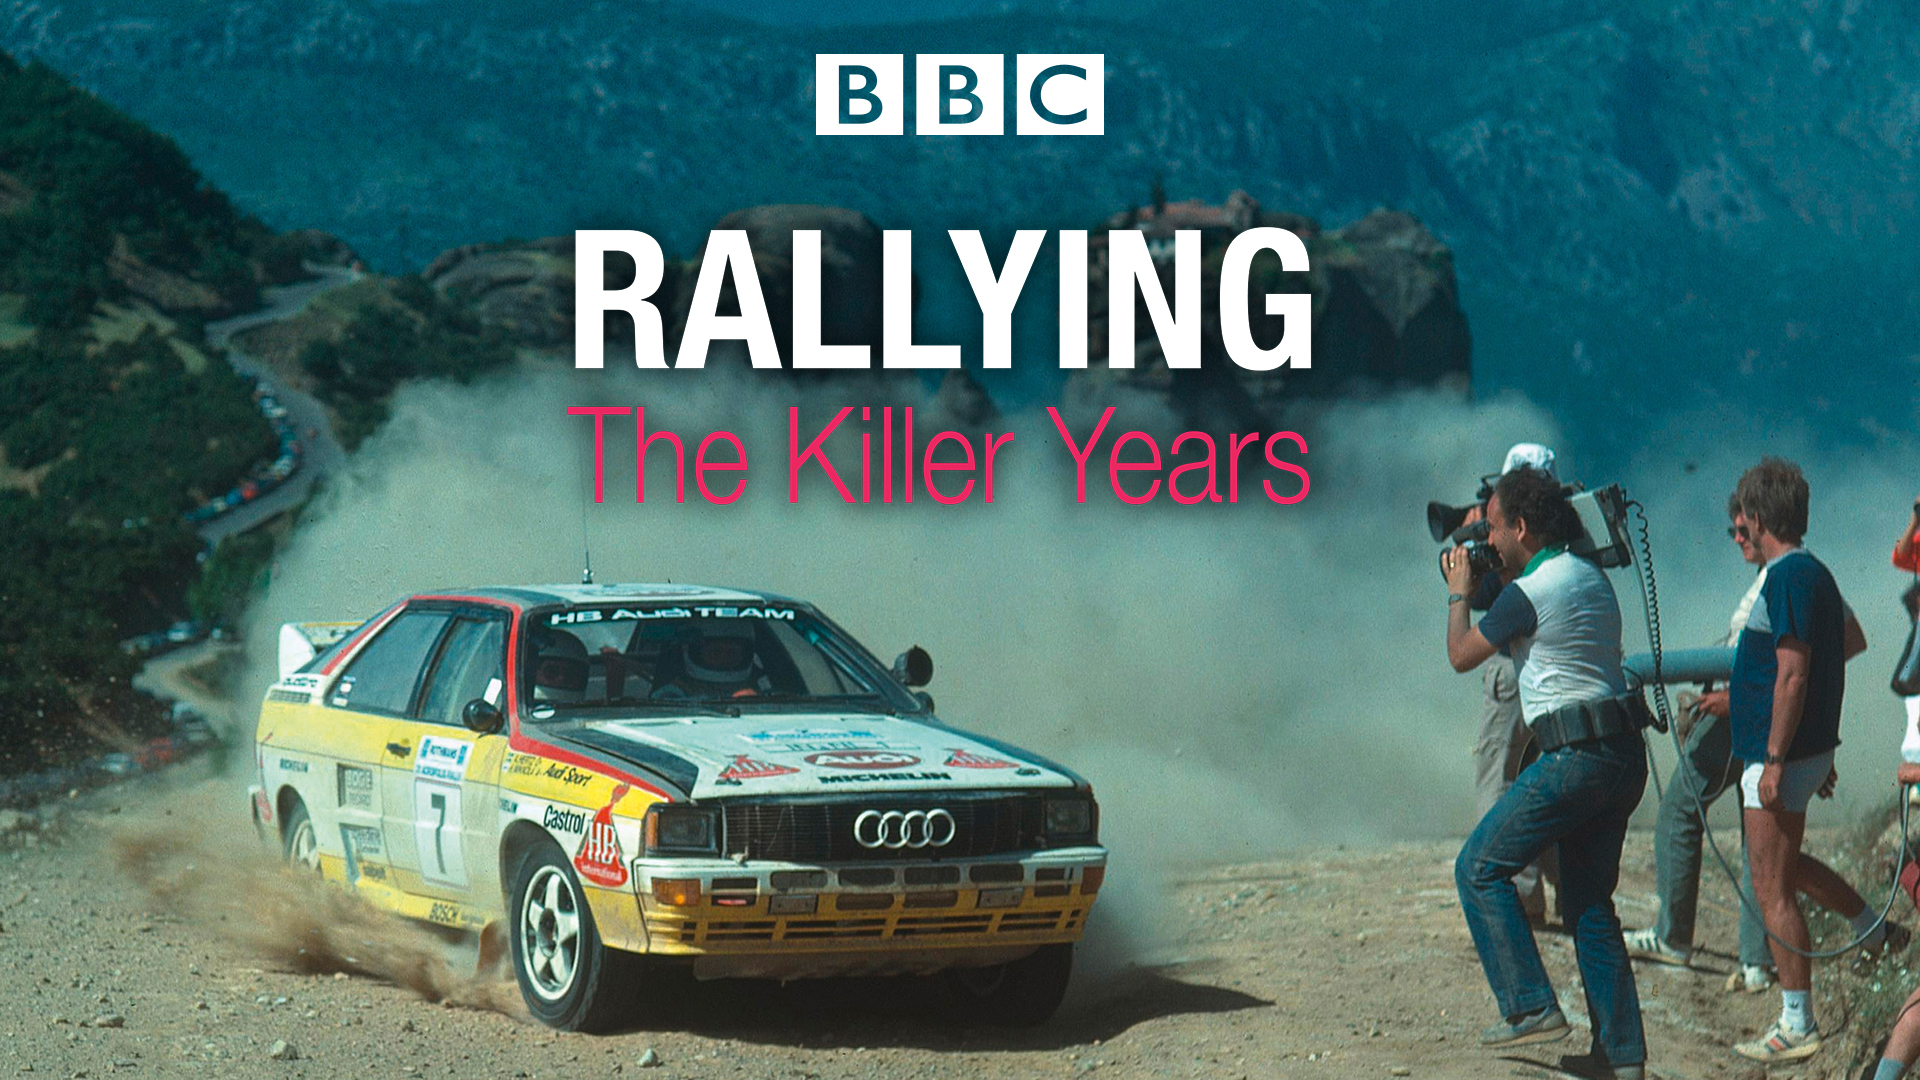 Rallying - The Killer Years